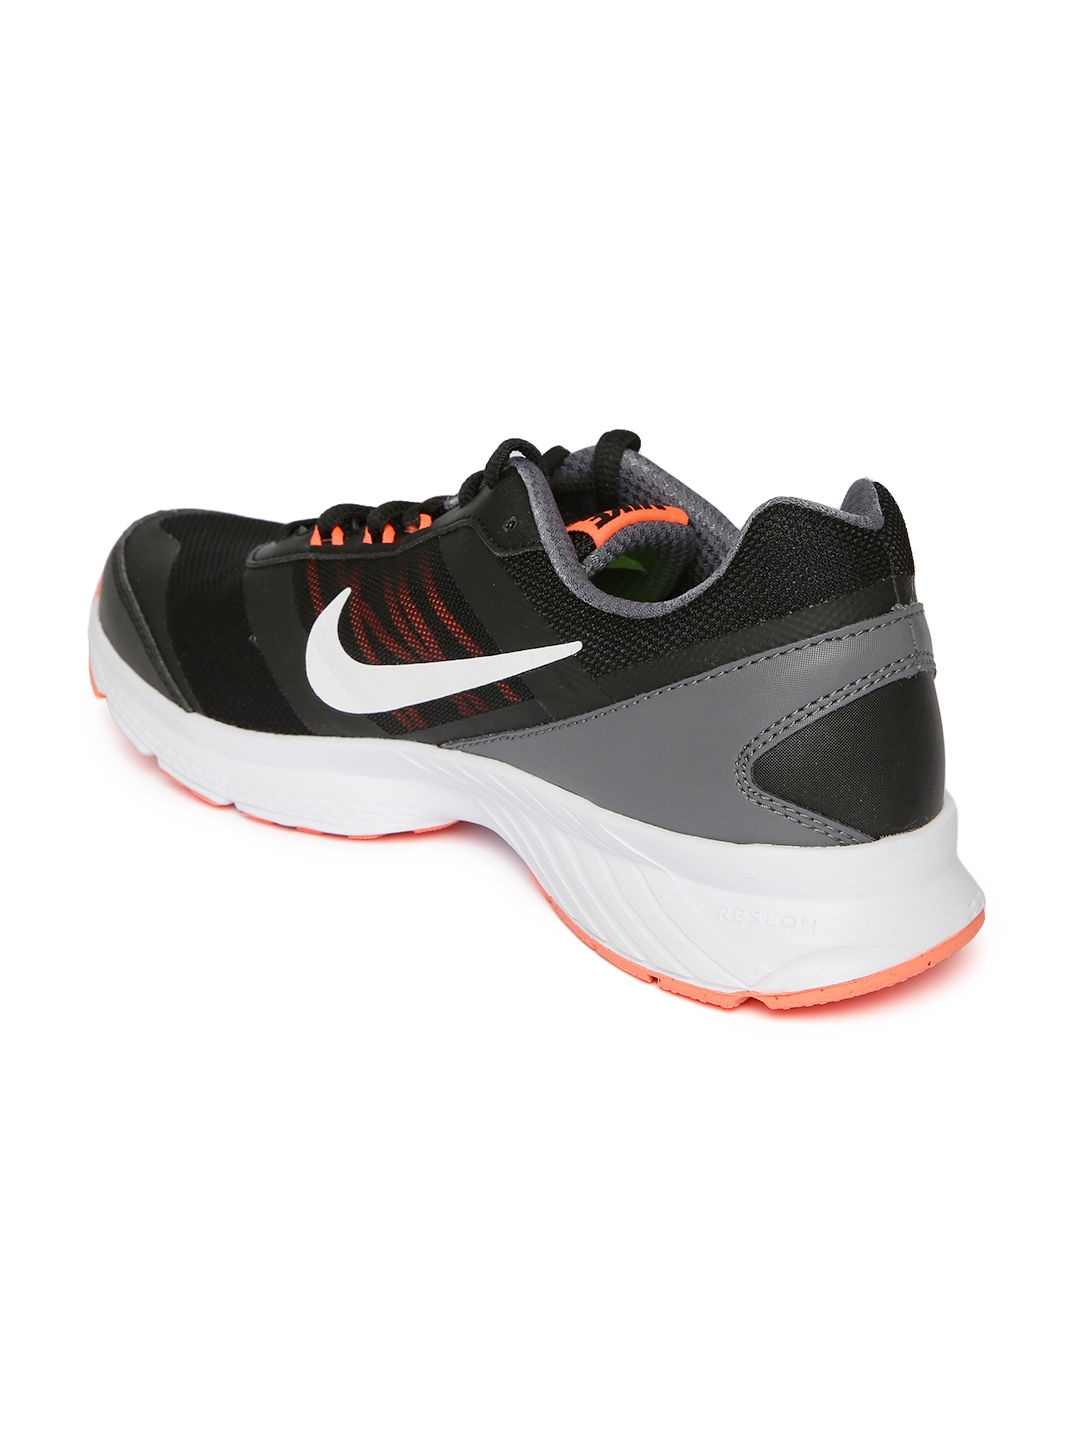 Buy Nike Men Black Air Relentless 5 MSL Sports Shoes - Sports Shoes ... 840615ad0